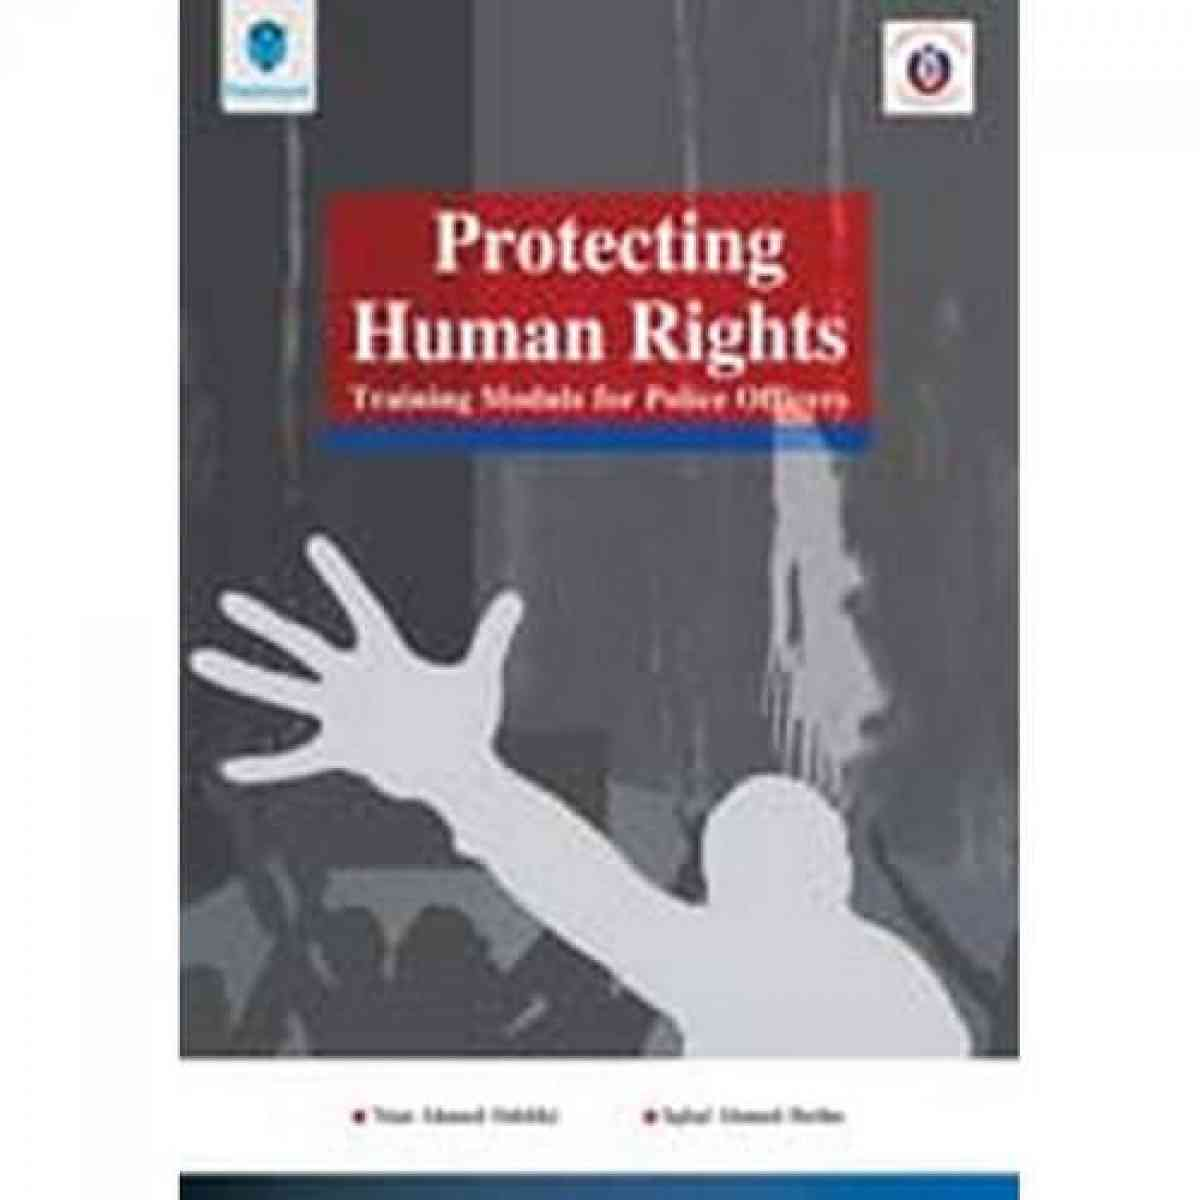 Paramount Protecting Human Rights: Training Module For Police Officers